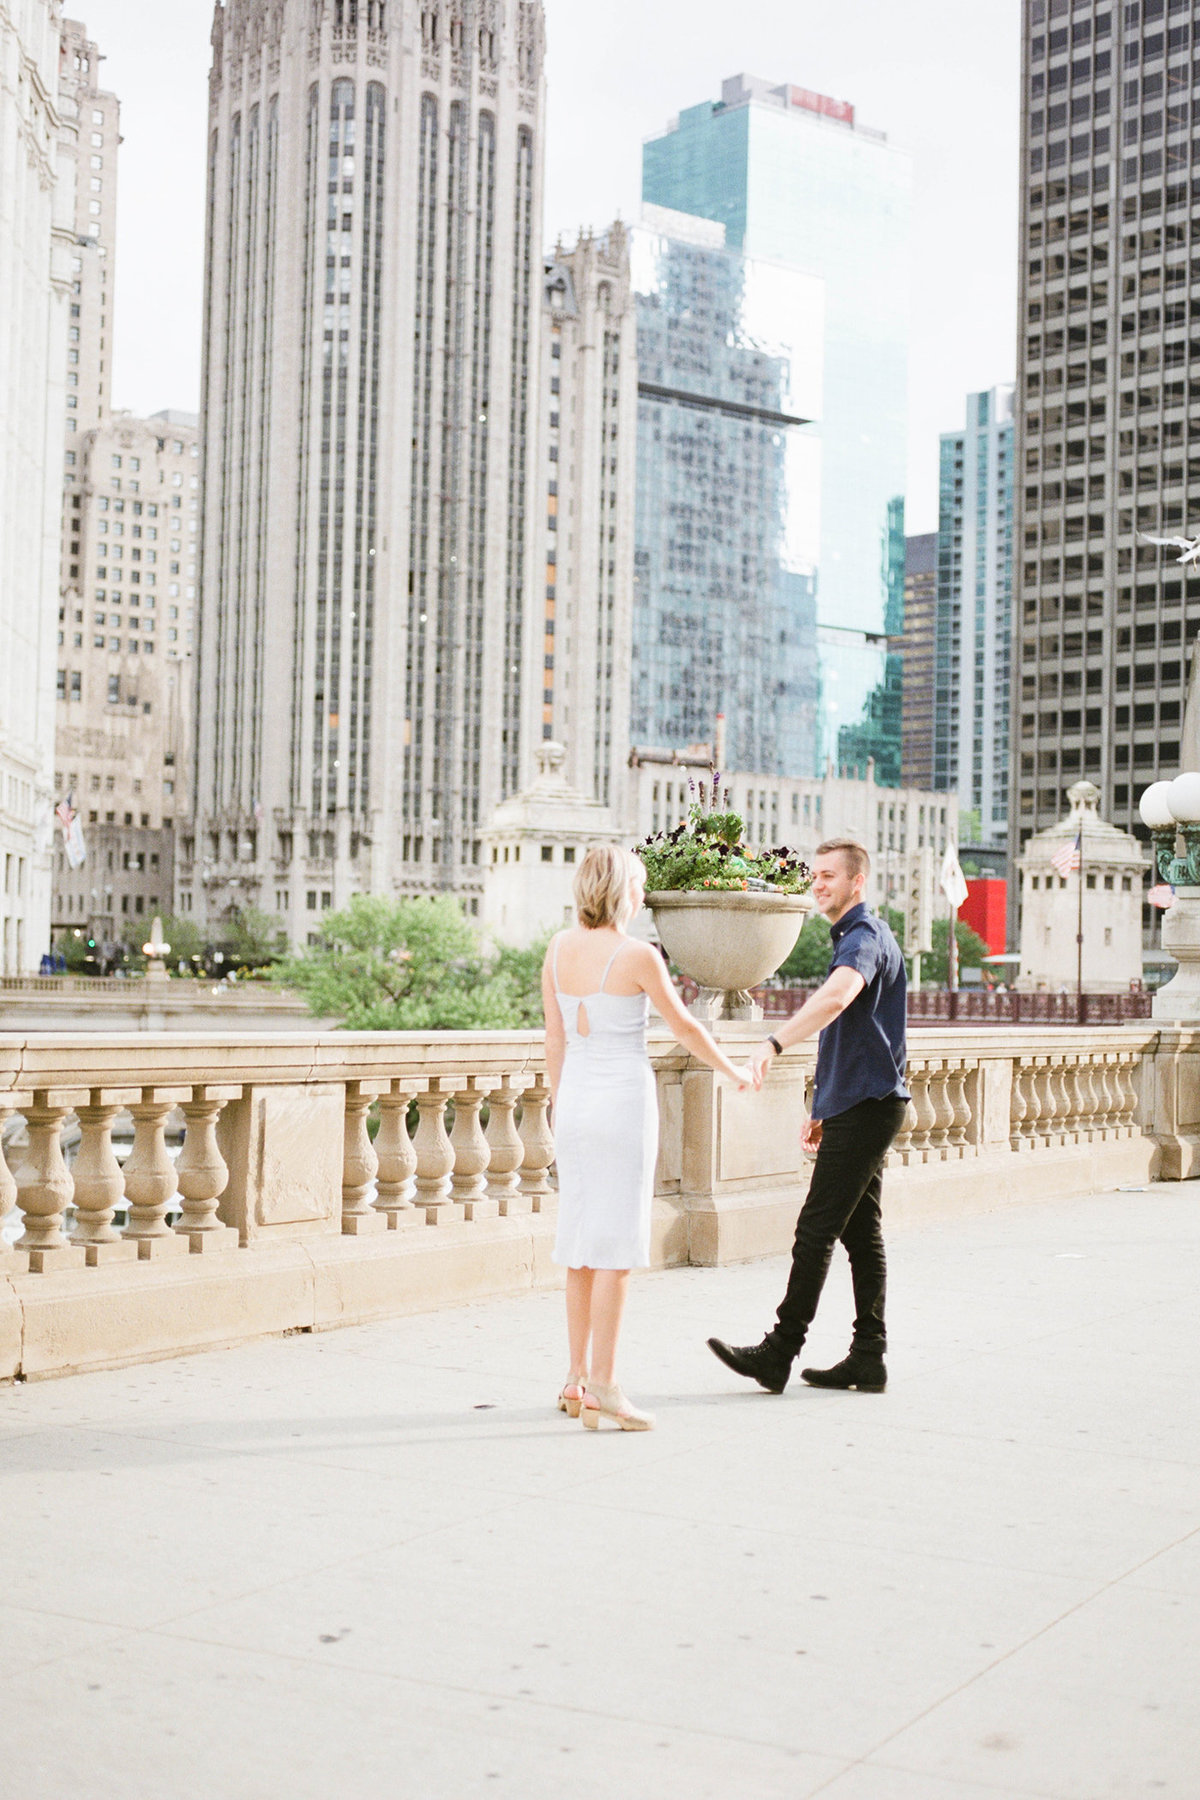 Chicago Wedding Photographer - Fine Art Film Photographer - Sarah Sunstrom - Sam + Morgan - Engagement Session - 8